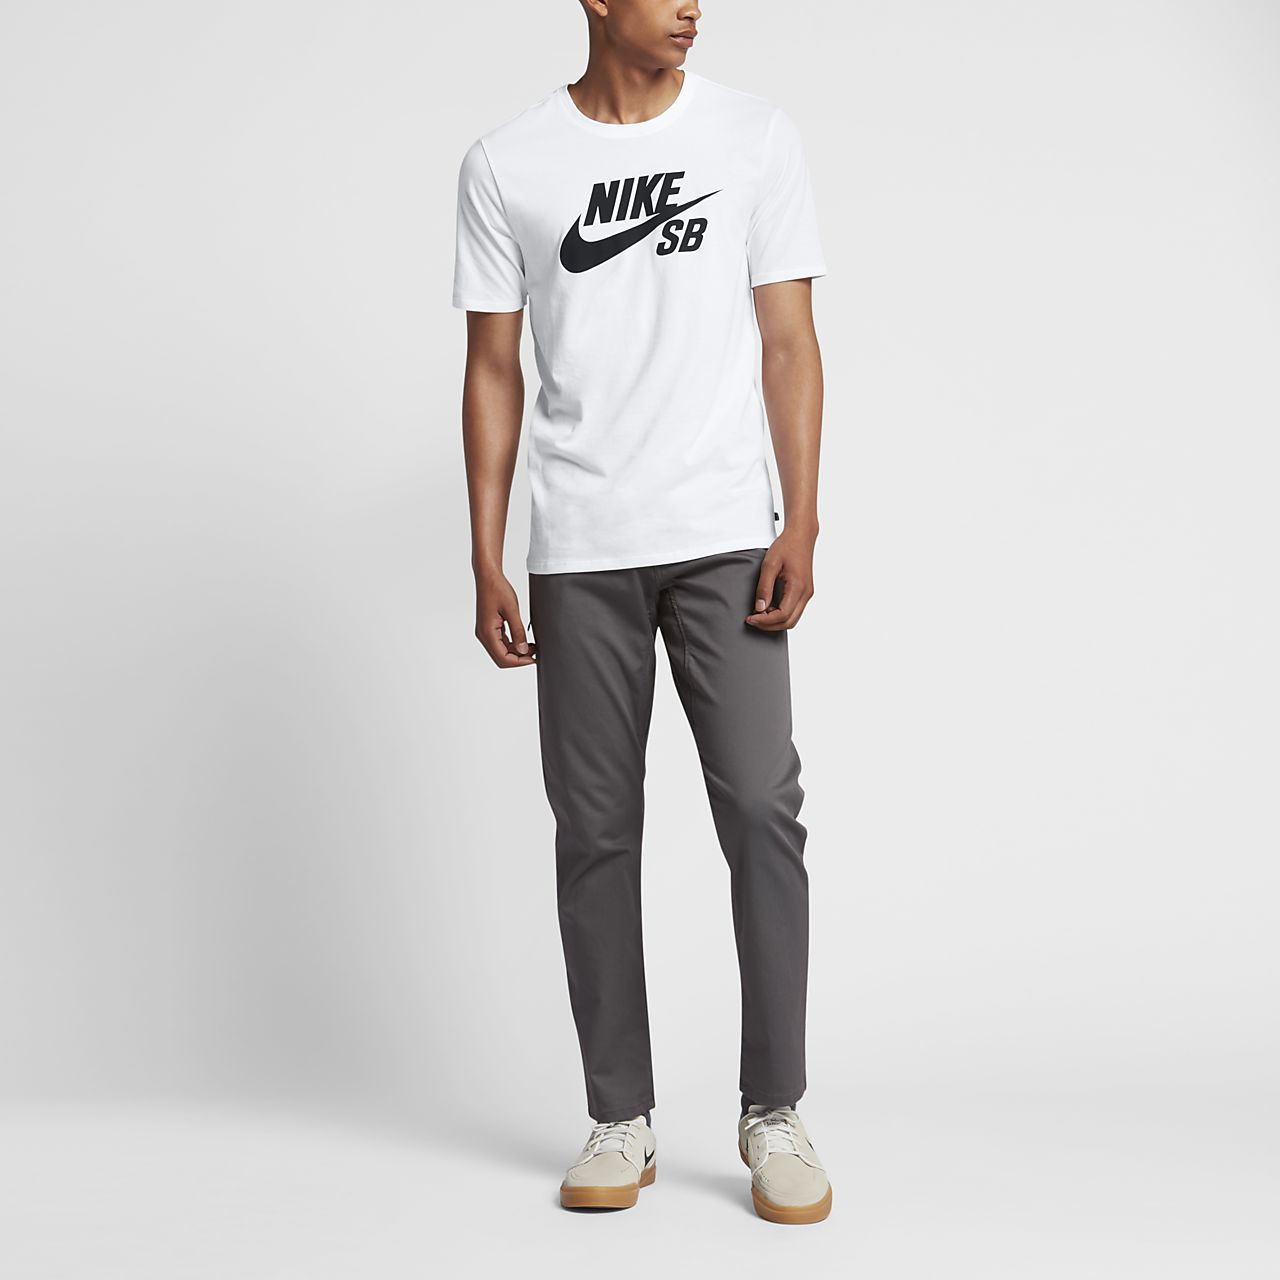 91245133 Youth Nike Sb Shirts – EDGE Engineering and Consulting Limited